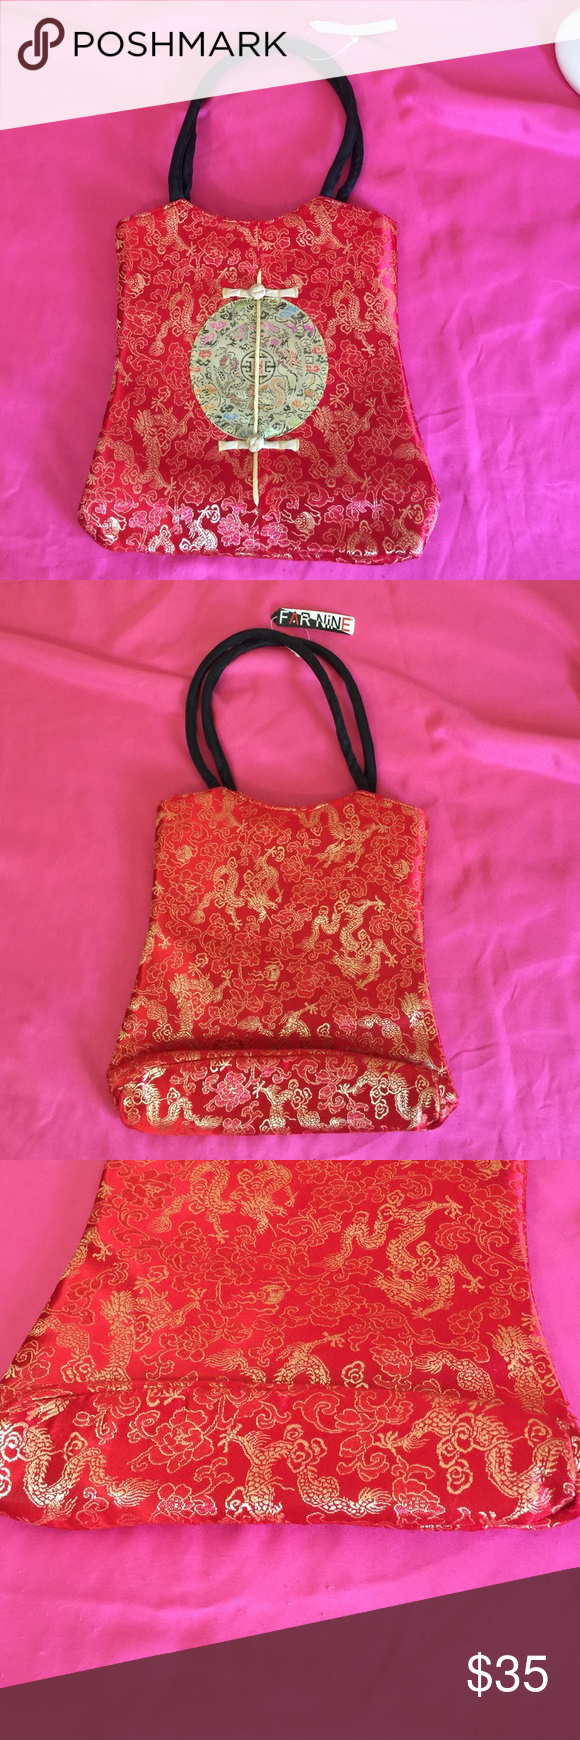 """Red Oriental Handbag This is a red oriental handbag. Never used. Approximate dimensions: L (10 1/2"""") x H (11 1/2"""") x W (2 1/2""""). Firm Price. Bags"""